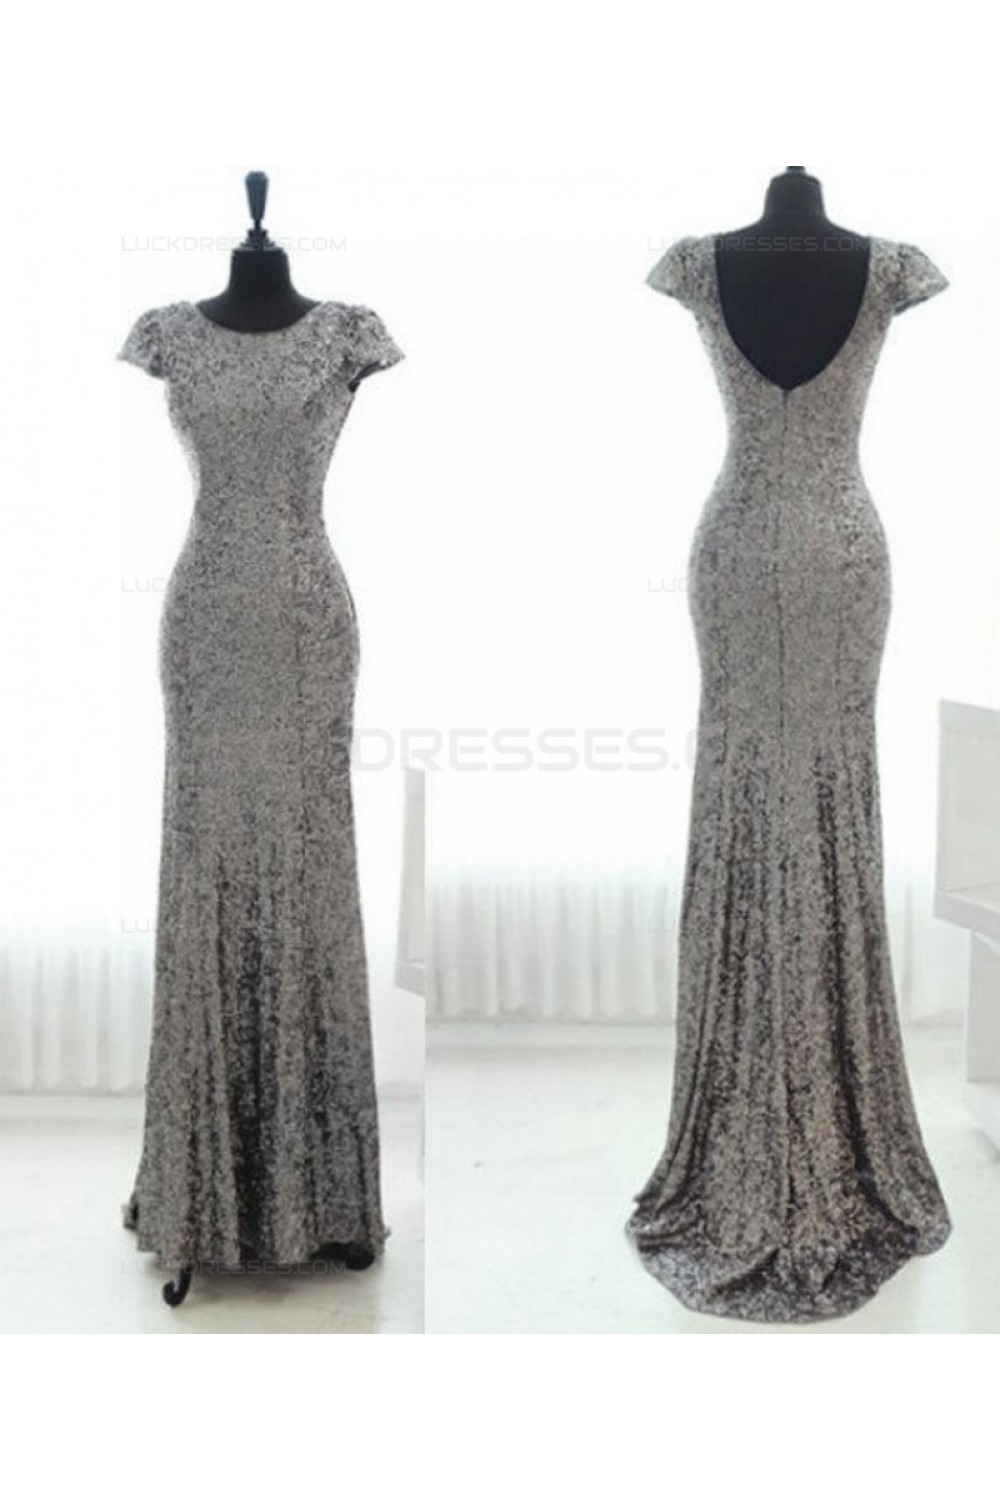 56046243eb3 Silver Sequin Bridesmaid Dresses Long - Gomes Weine AG